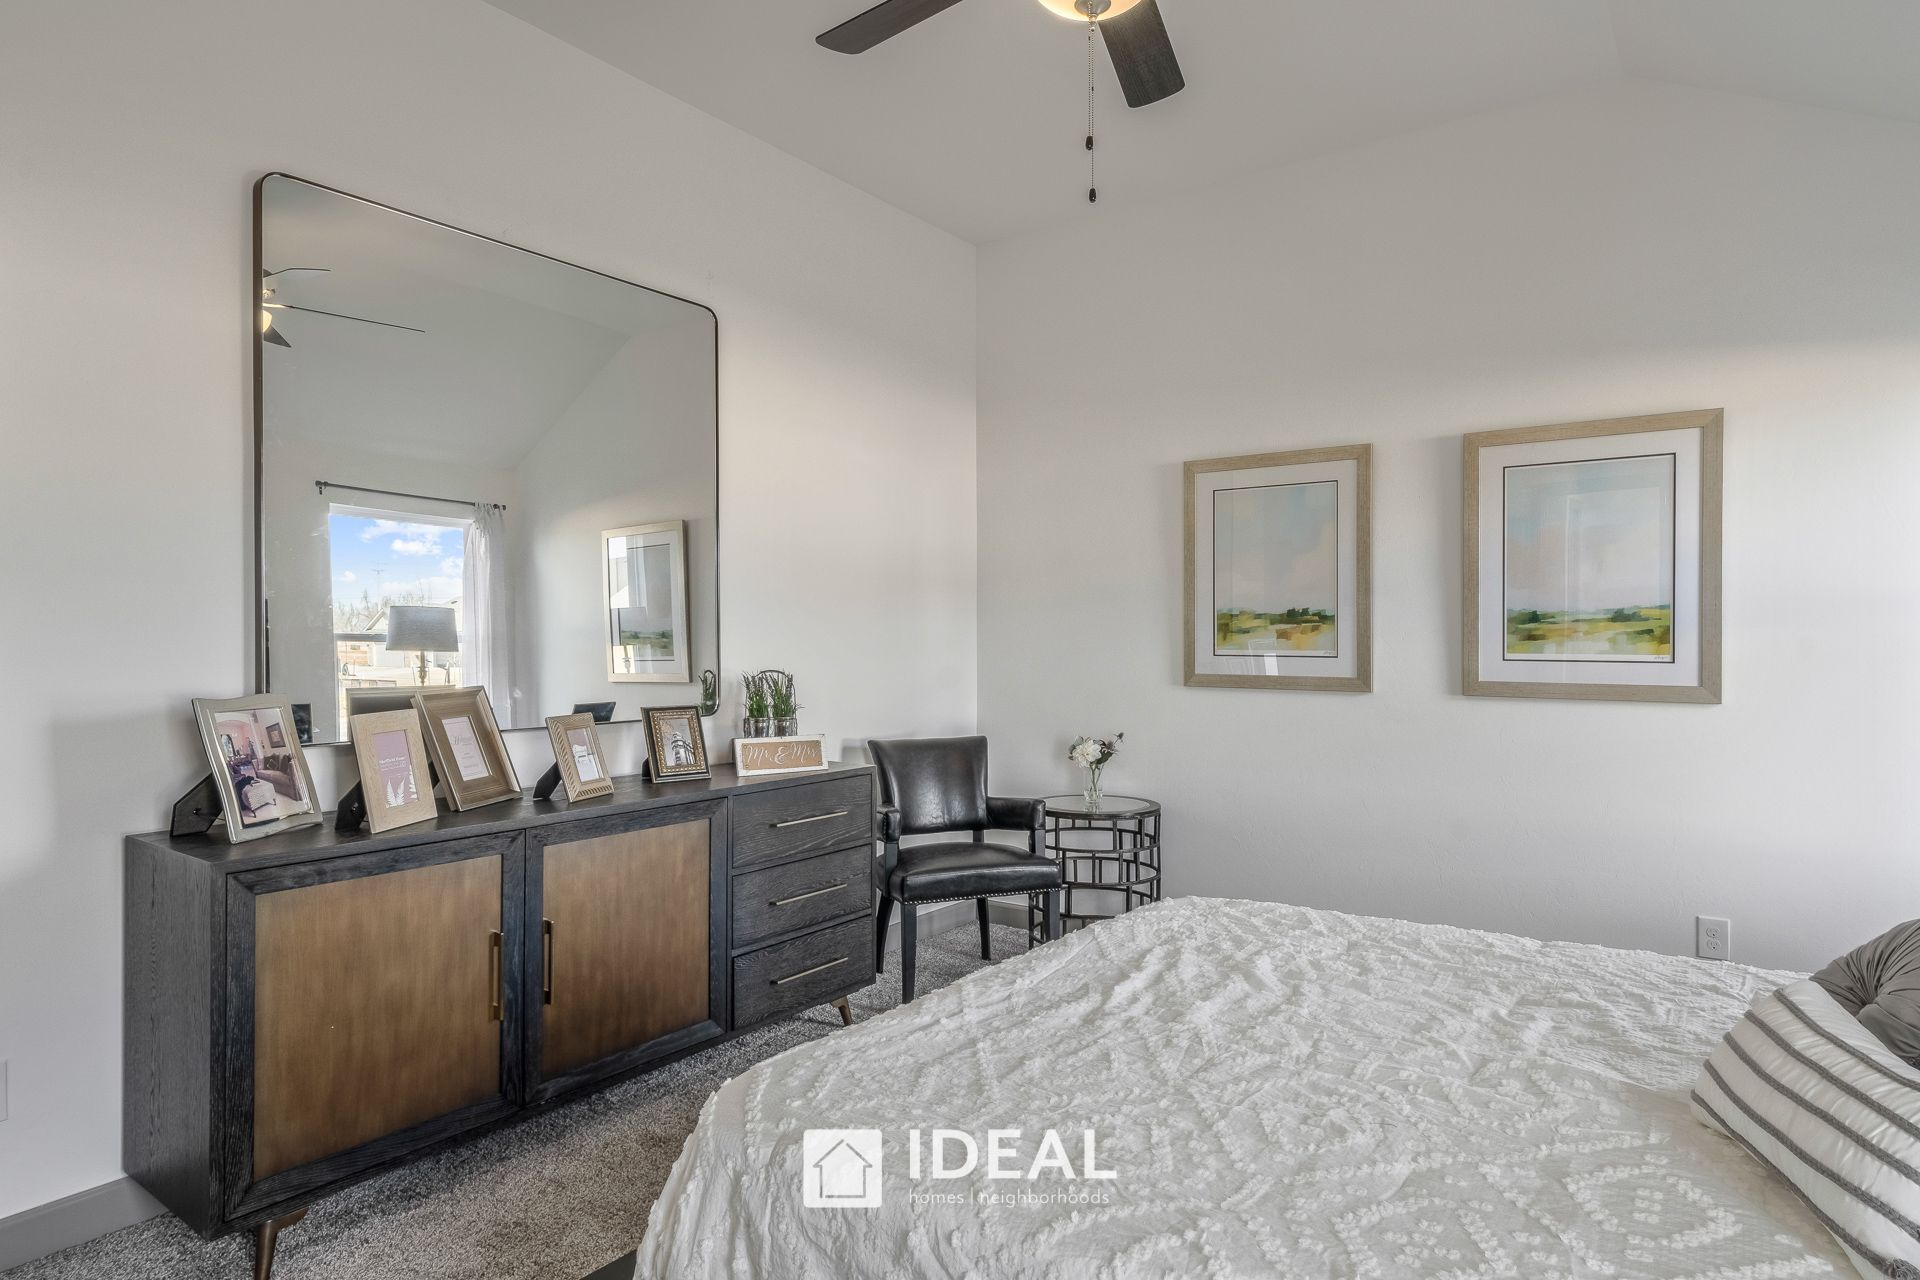 Bedroom featured in the Holloway By Ideal Homes in Oklahoma City, OK